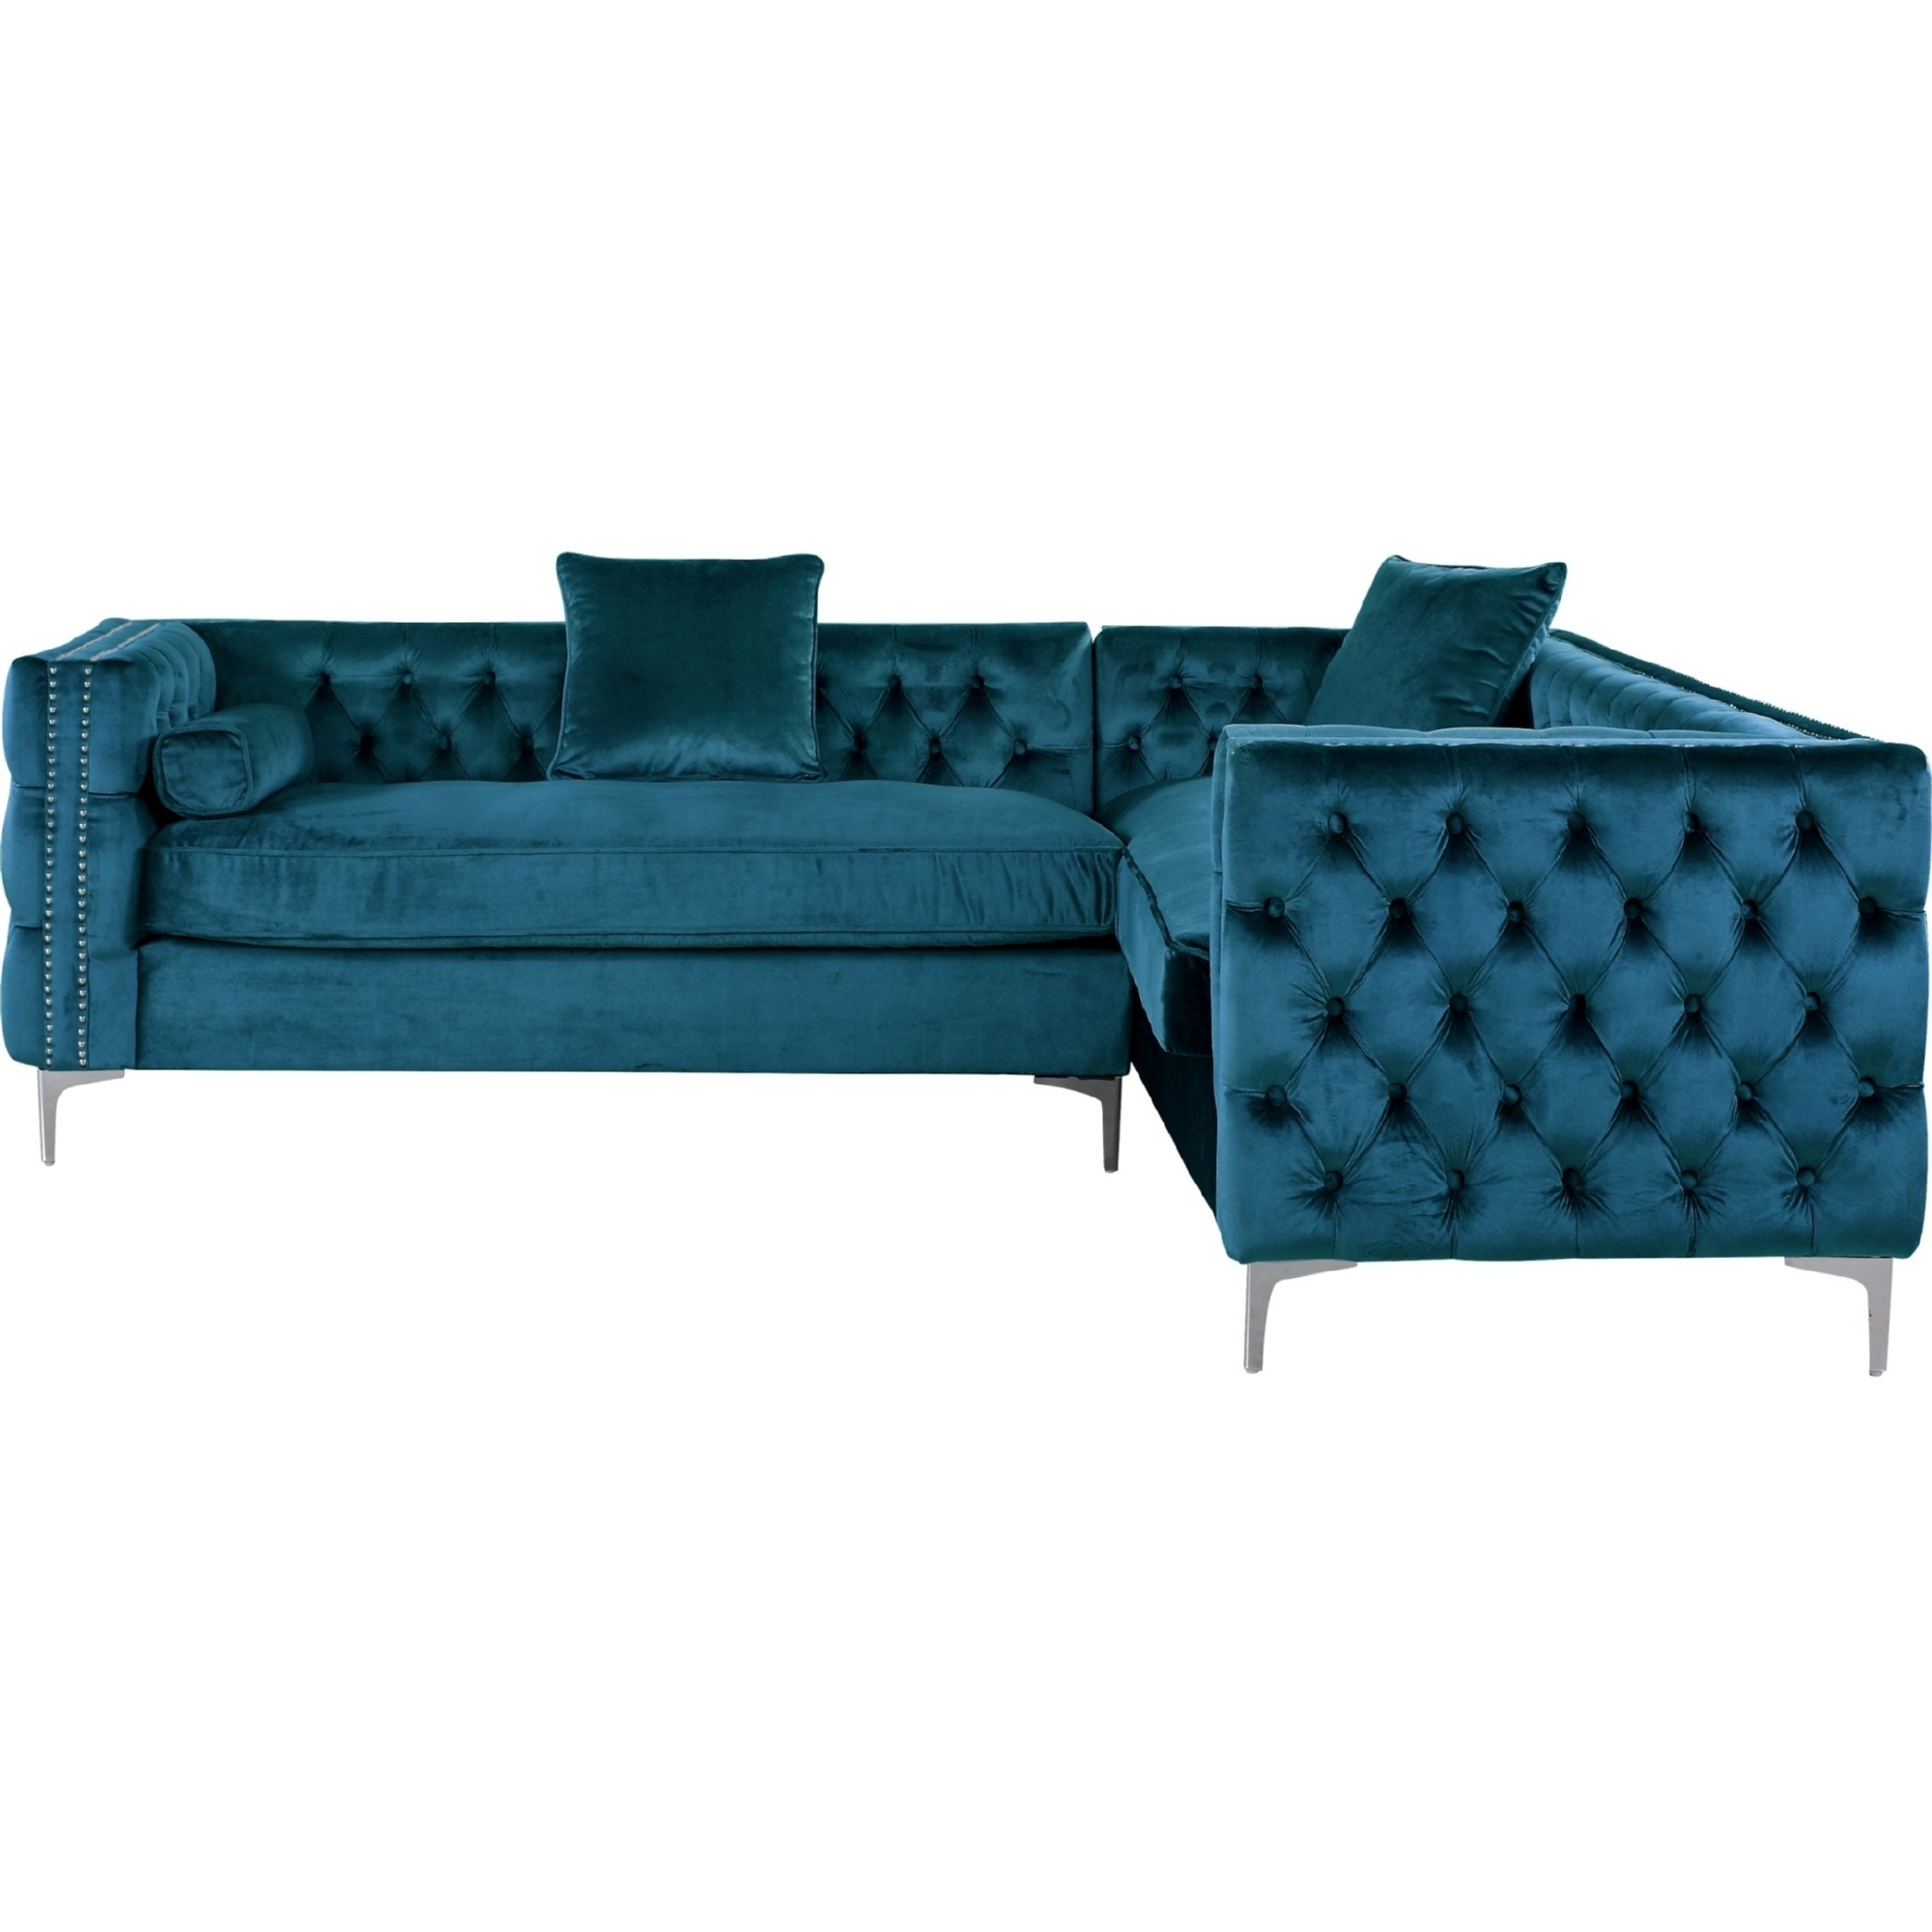 Jordans Sectional Sofas With Best And Newest Chic Home Mozart Left Sectional Sofa W/ Right Hand Chaise In (View 14 of 15)